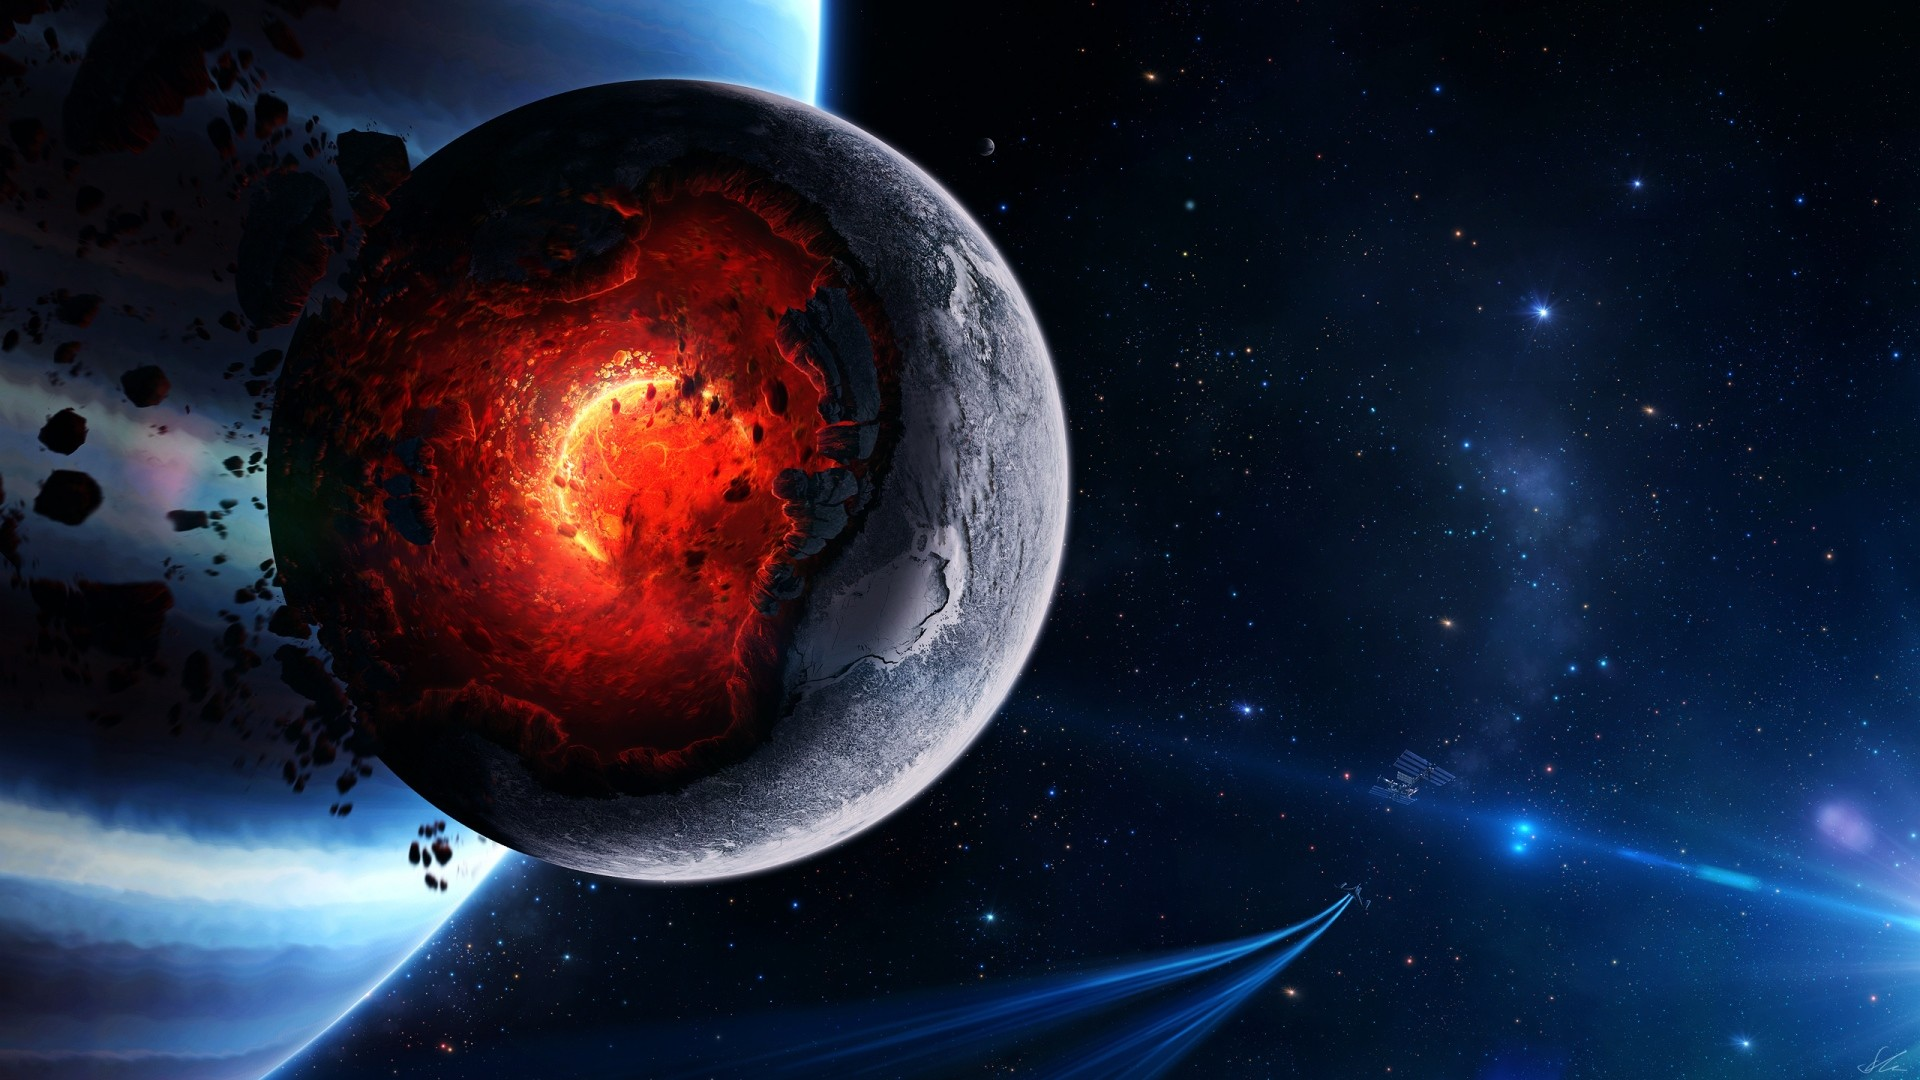 1920x1080 Preview wallpaper space, cataclysm, planet, art, explosion, asteroids,  comets,